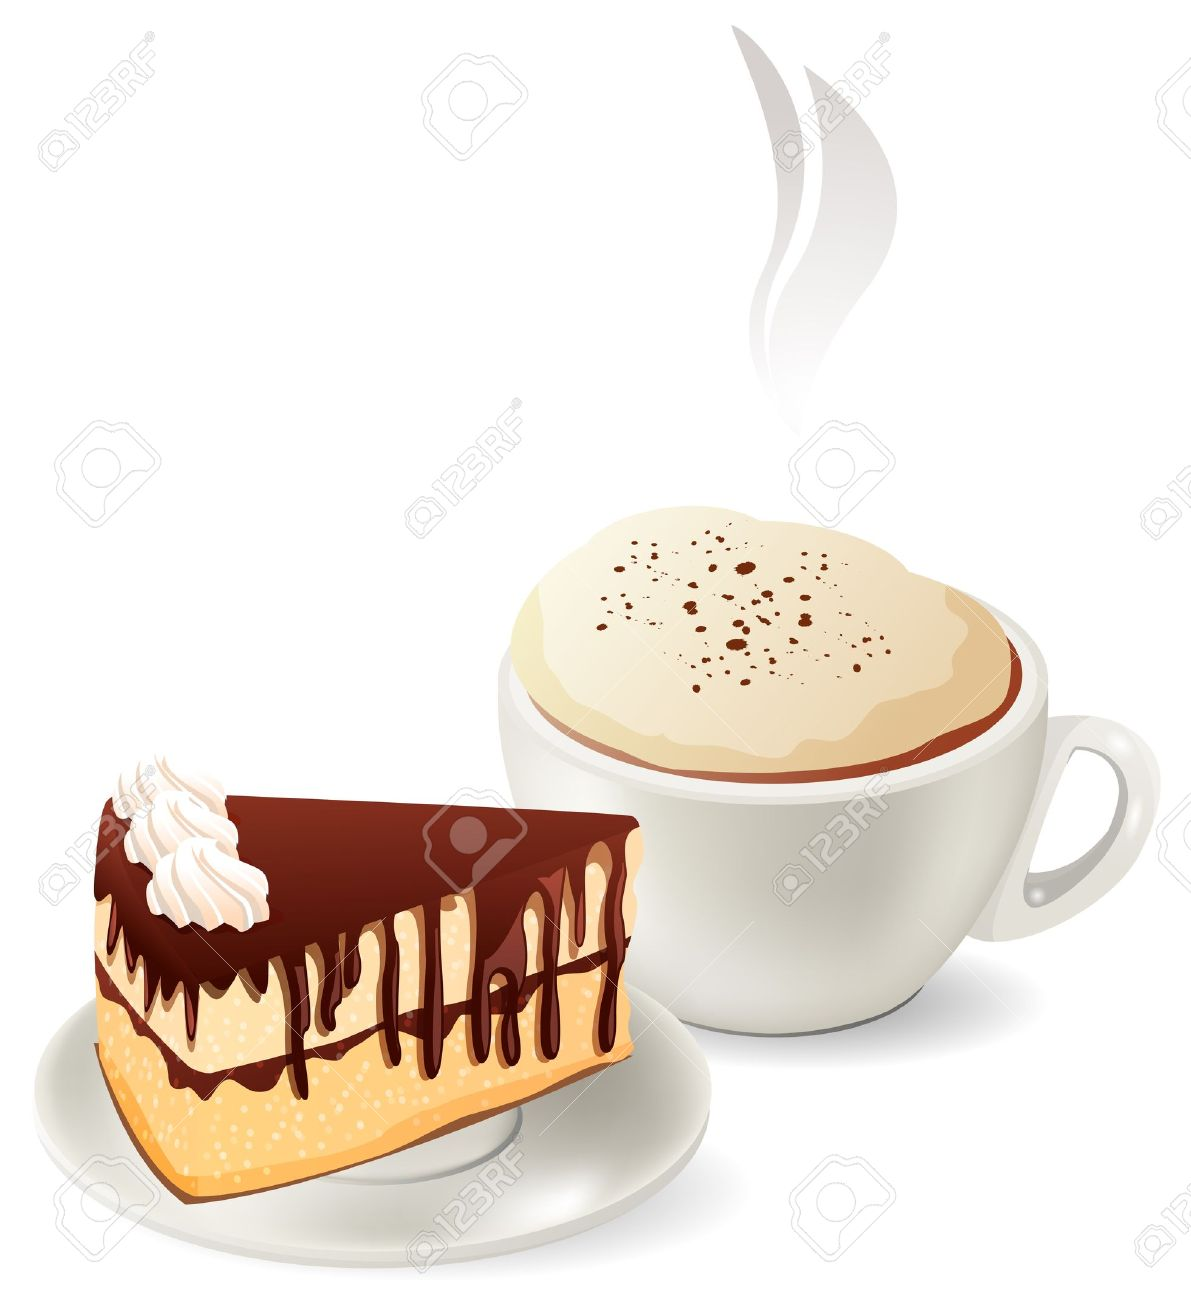 Cup of hot coffee with cake.